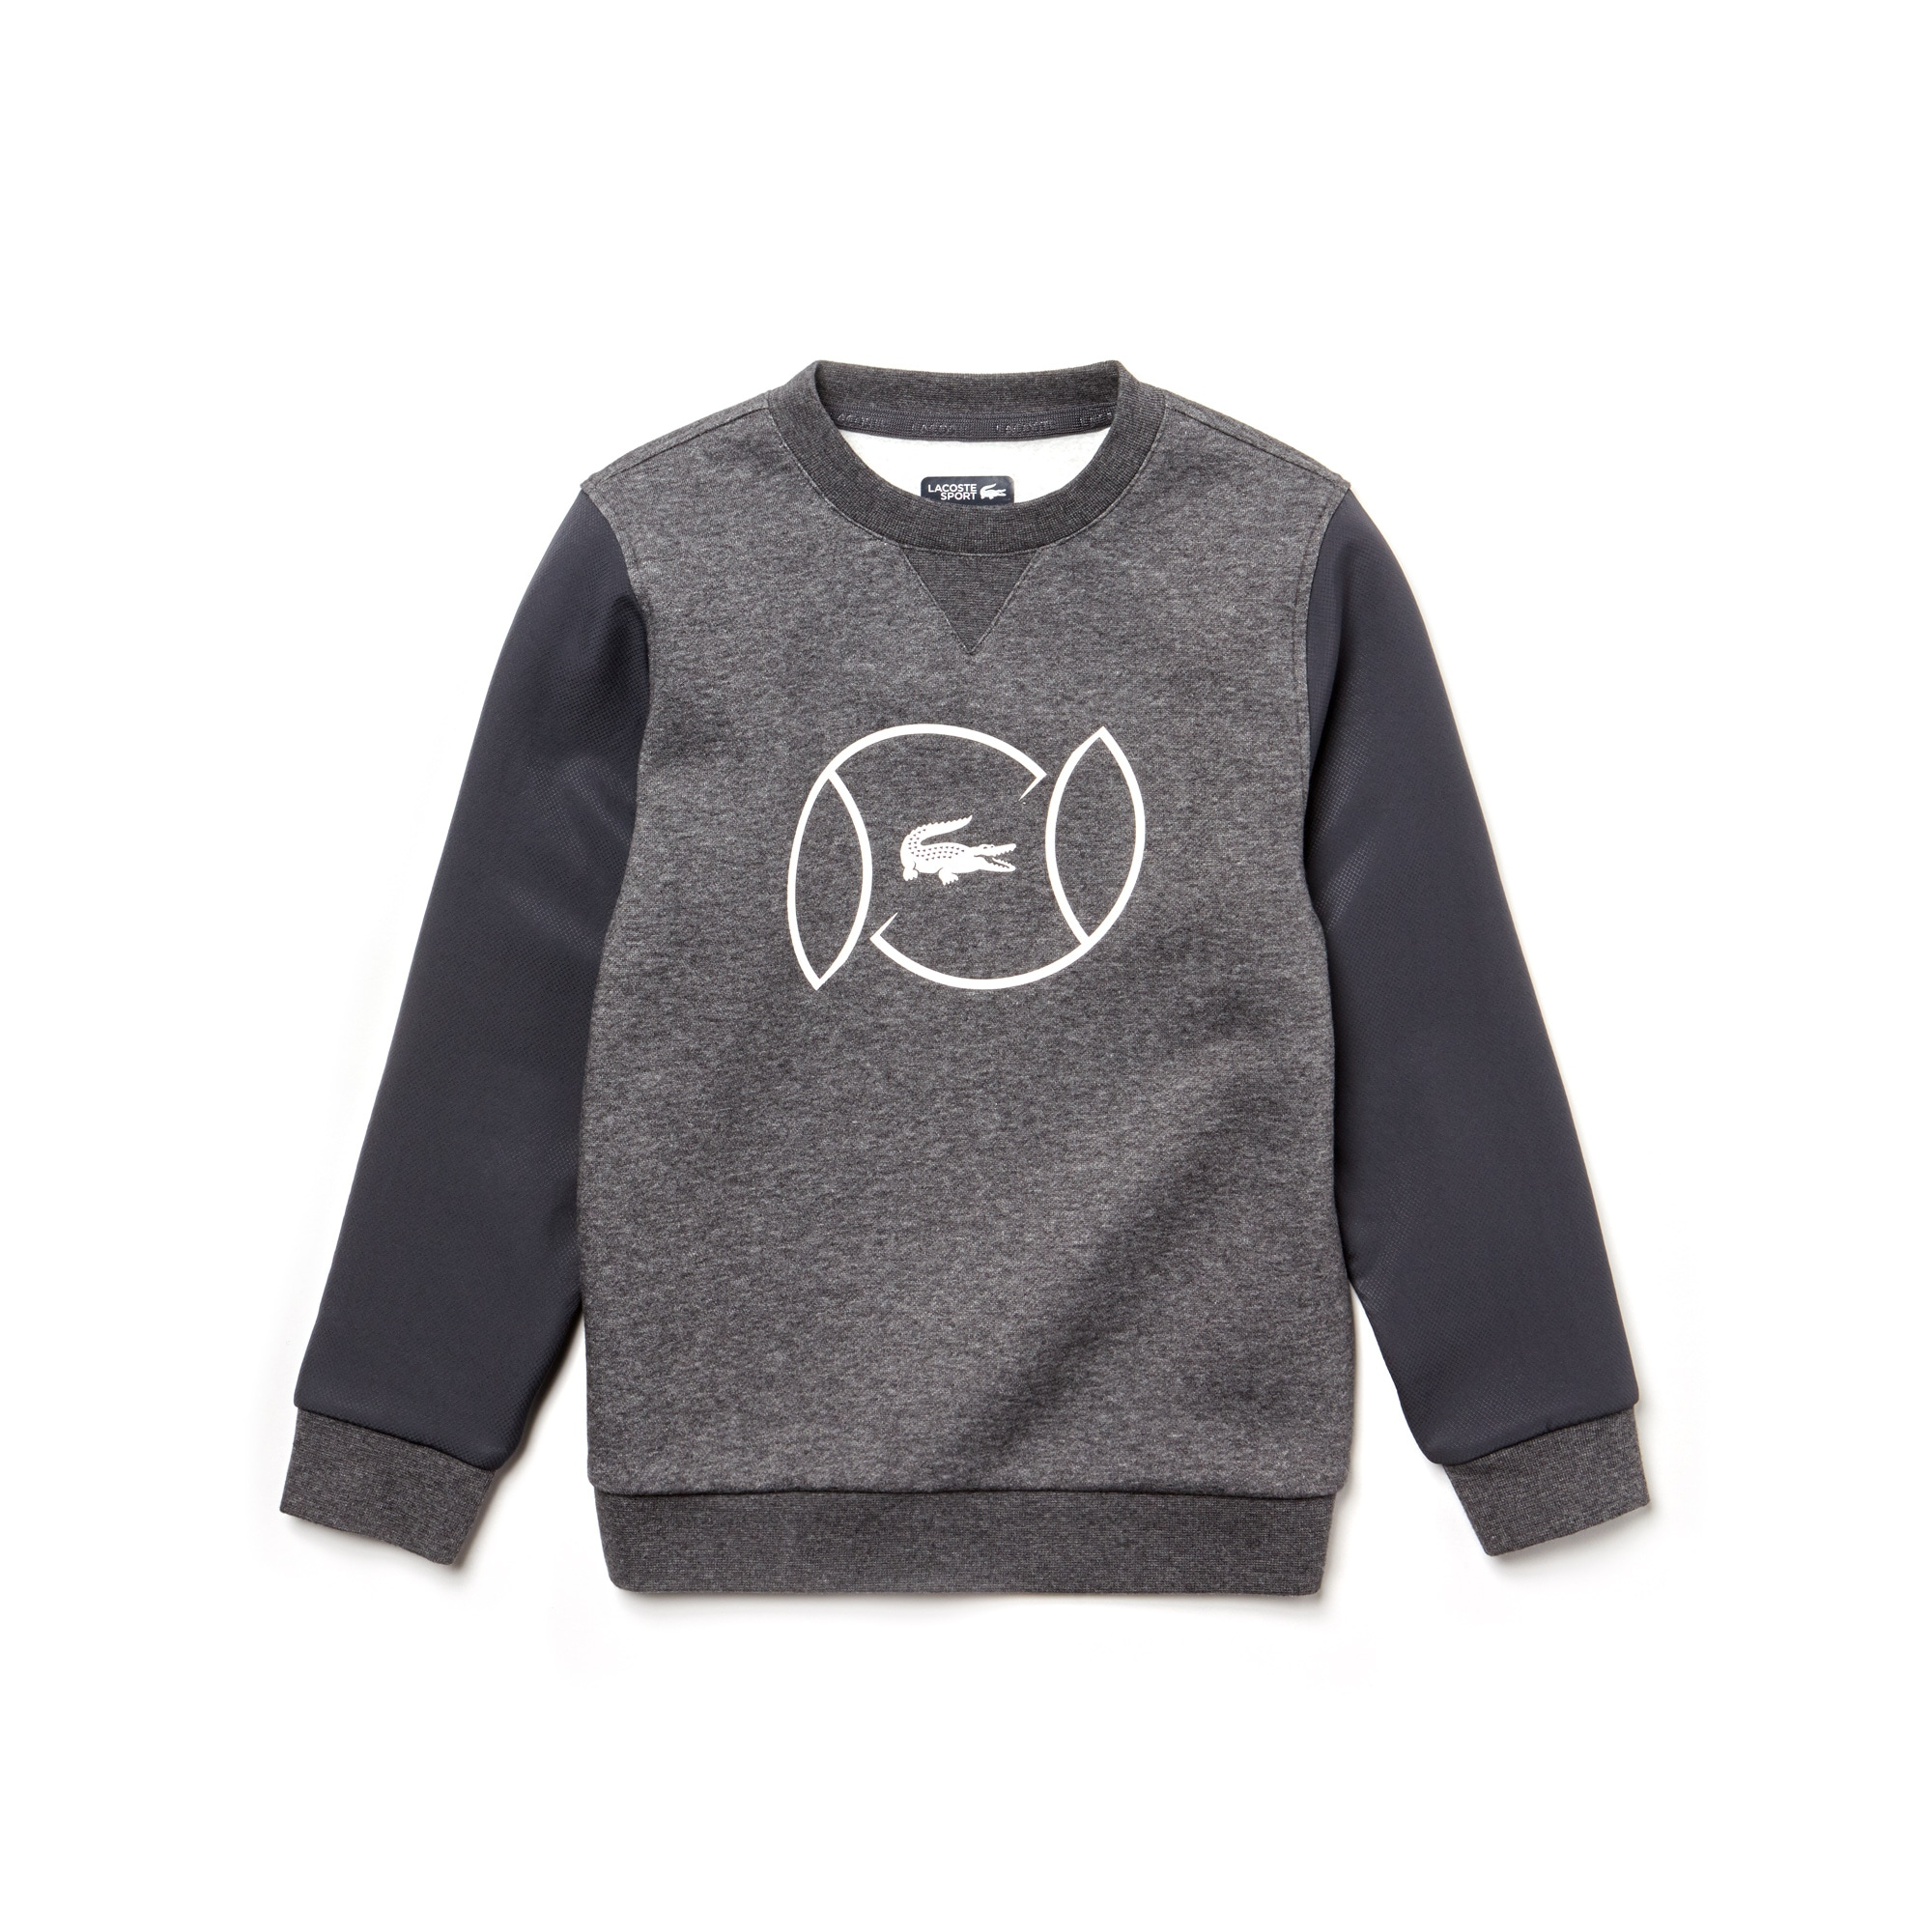 Boys' Lacoste SPORT Fleece And Lettering Tennis Sweatshirt